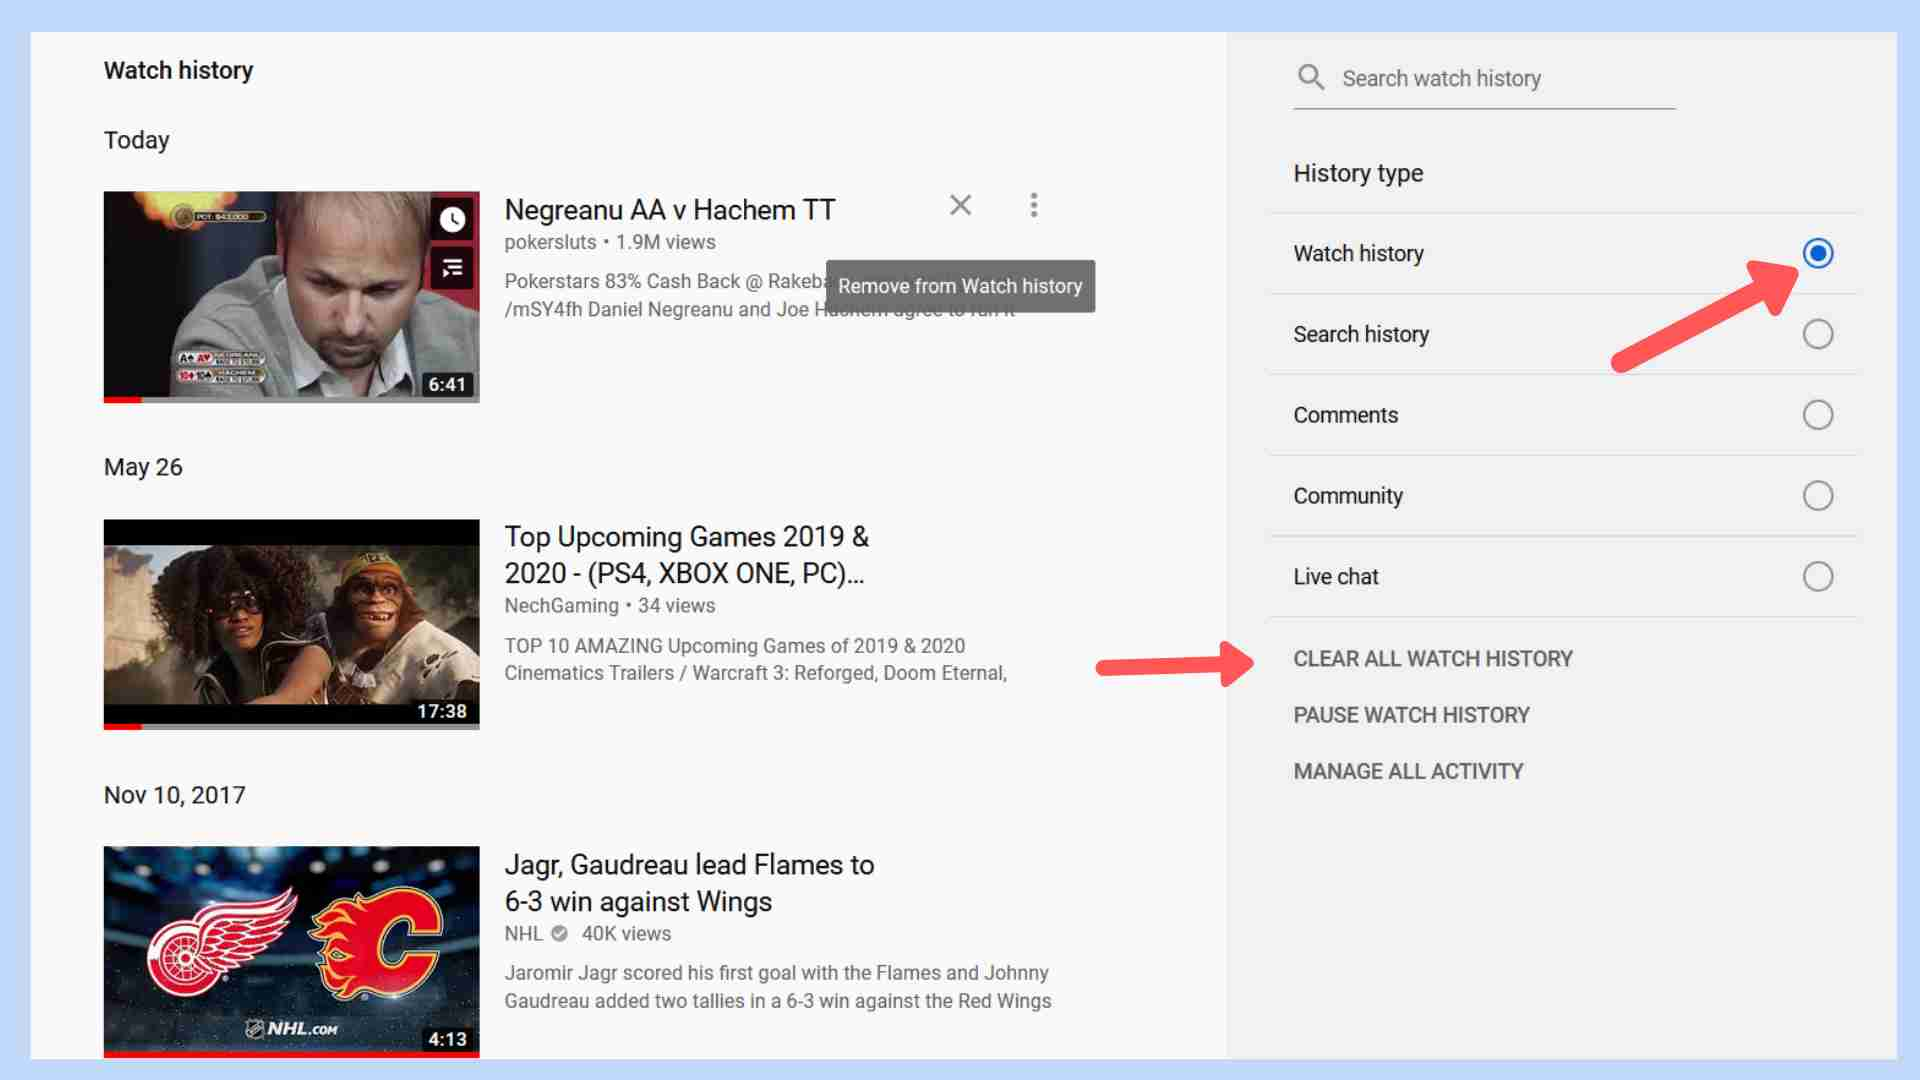 How To Clear Entire Viewing History On YouTube